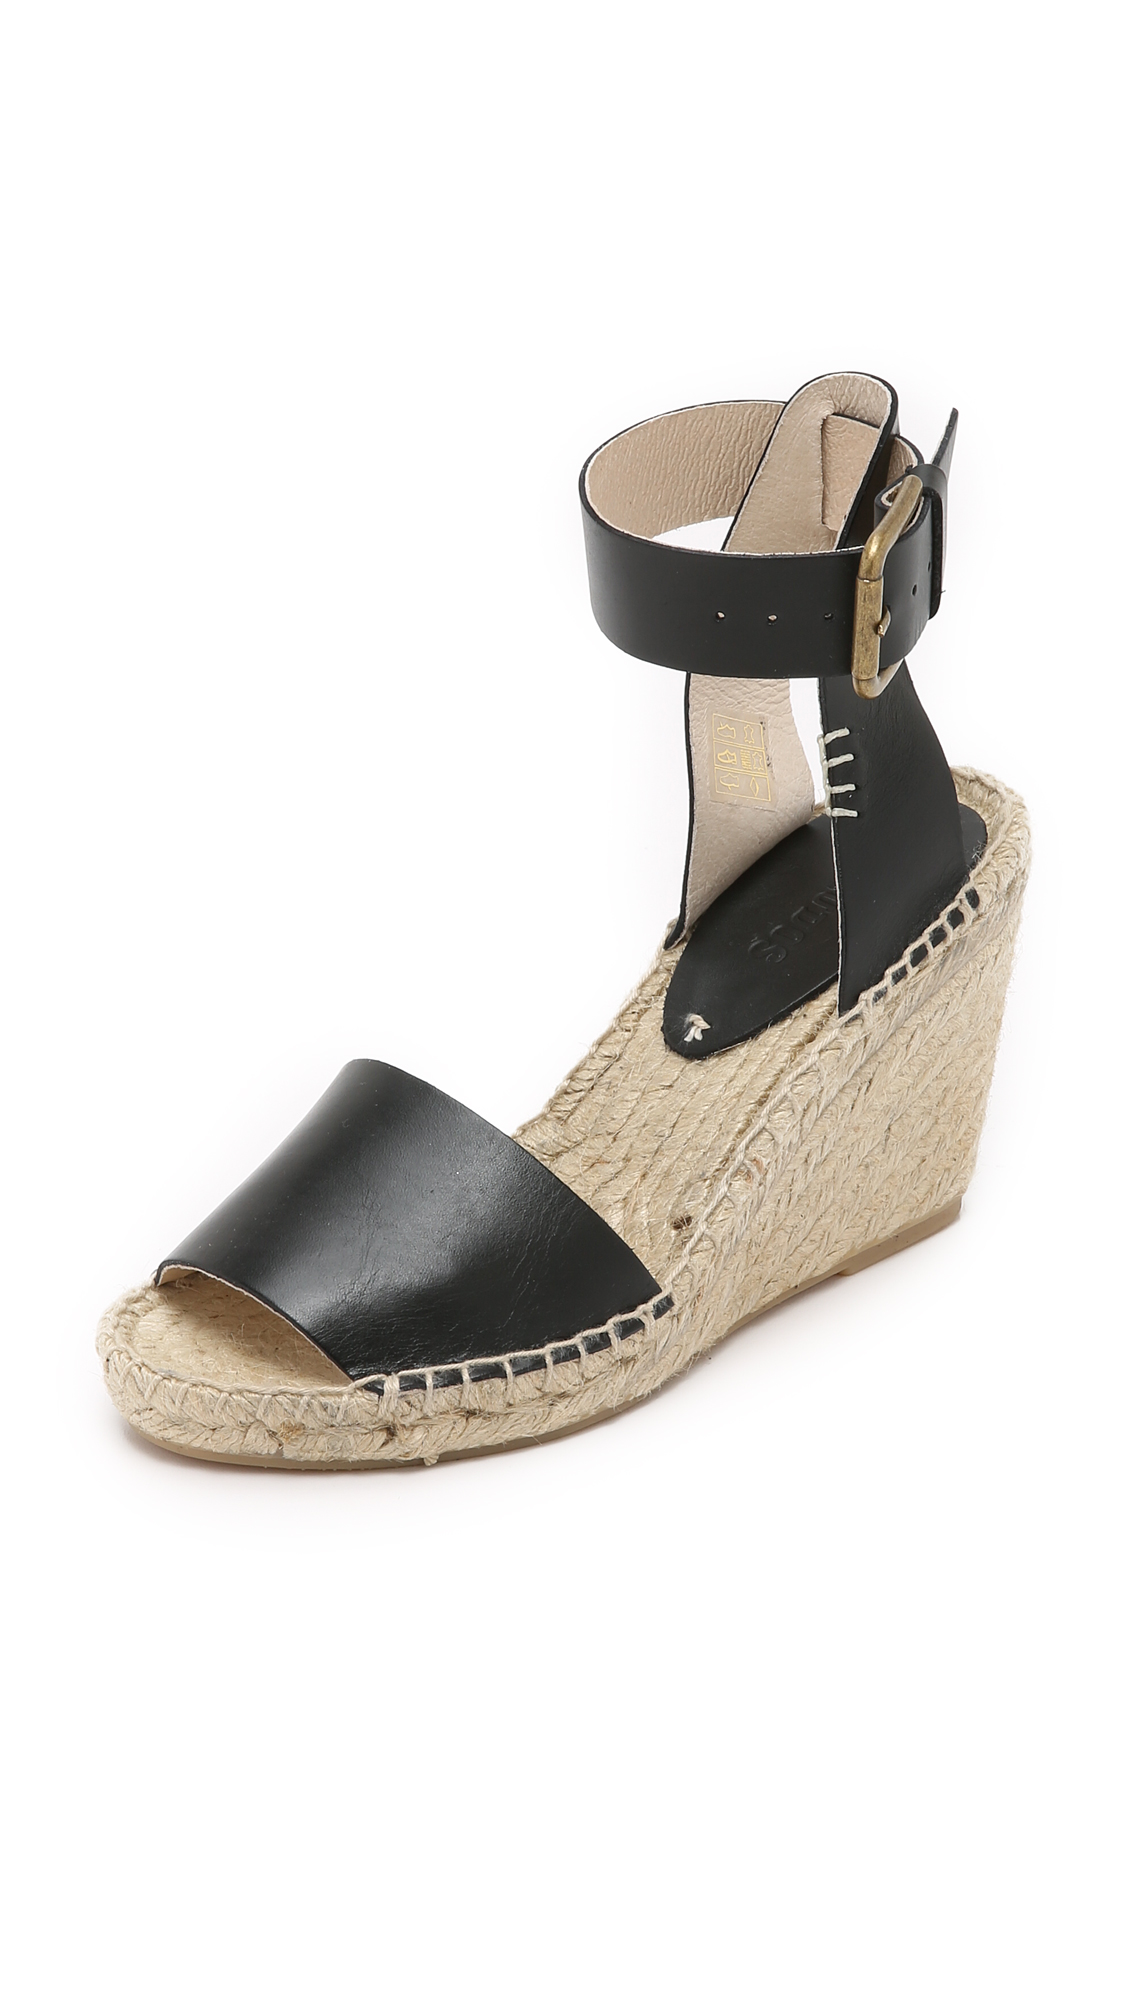 329acdffb5a Check out Soludos Open Toe Wedge Leather Espadrilles - Black - ShopYourWay